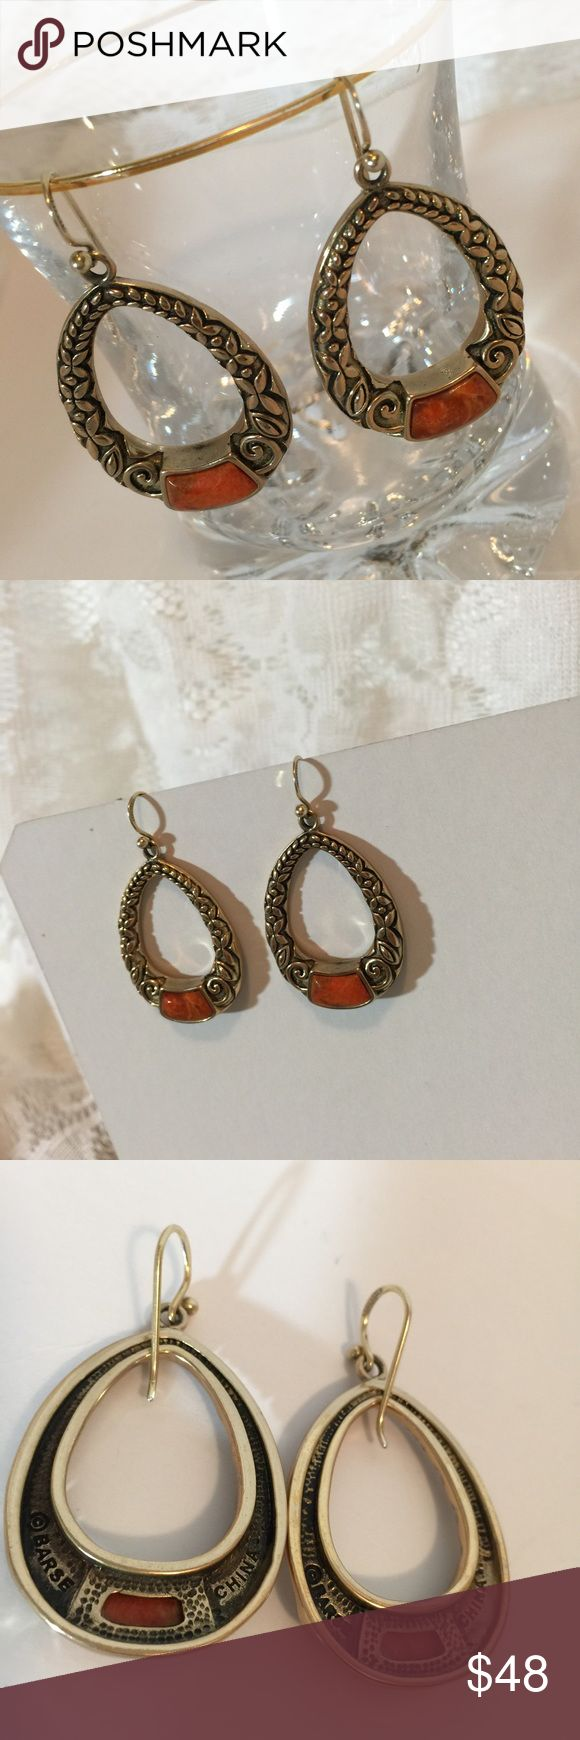 Barse Sponge Coral Bronze Earrings Barse Sponge Coral Bronze Earrings! 2 inch dangle! Excellent Quality! Earrings are very nice and not costume jewelry.  Received as gift but never worn!   Barse Jewelry is designer sterling silver and bronze with a focus on stones, especially through custom cuts and placements. Every piece designed will bear an unusual detail that reveals the special touch that Barse fans love.  Barse Jewelry is designed locally in Dallas, TX and sold in fine department…